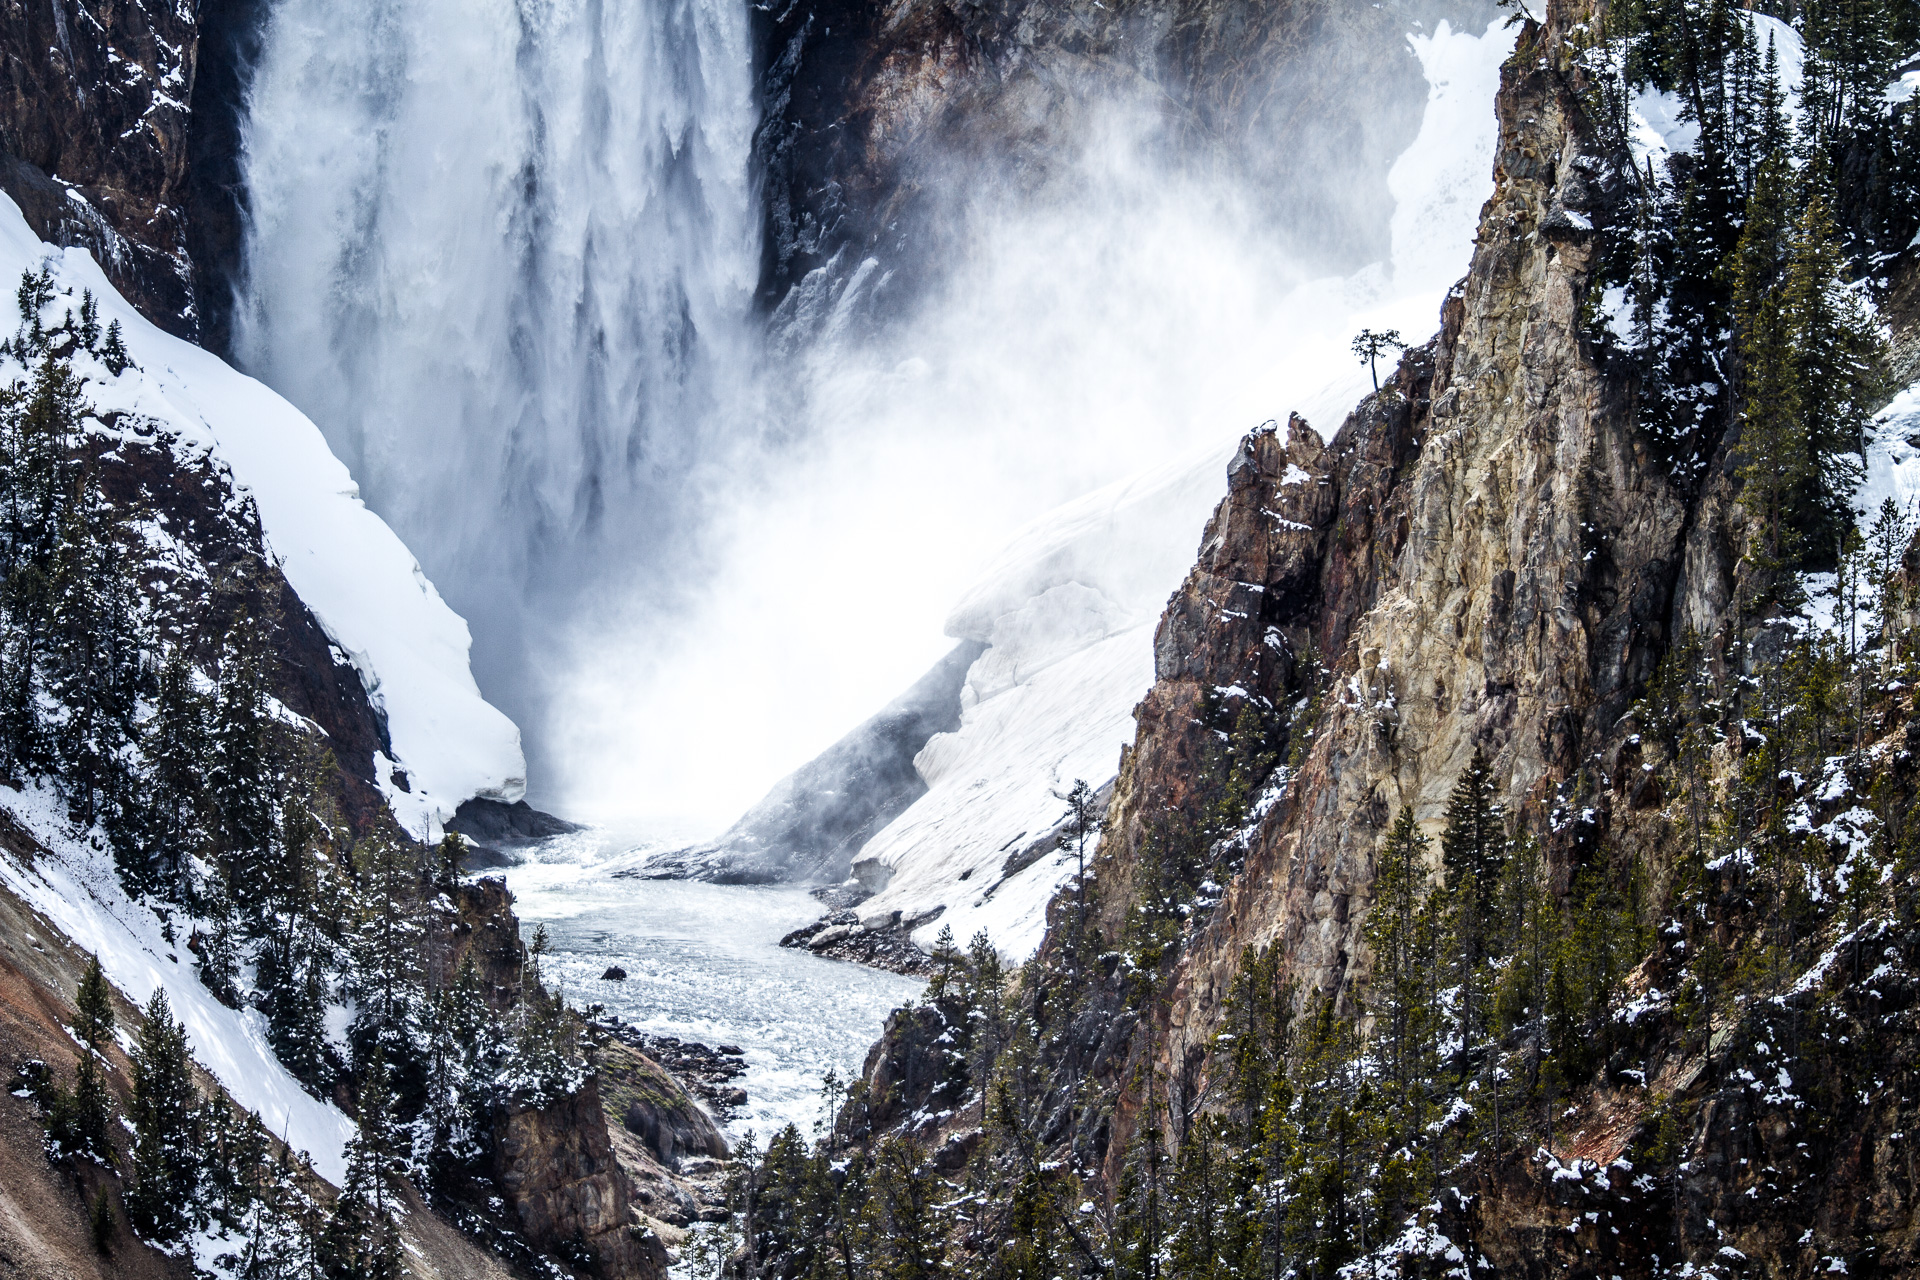 Upper Falls Yellowstone River Canon 200mm f2 lens Yellowstone National Park WY Sparky Stensaas-0484